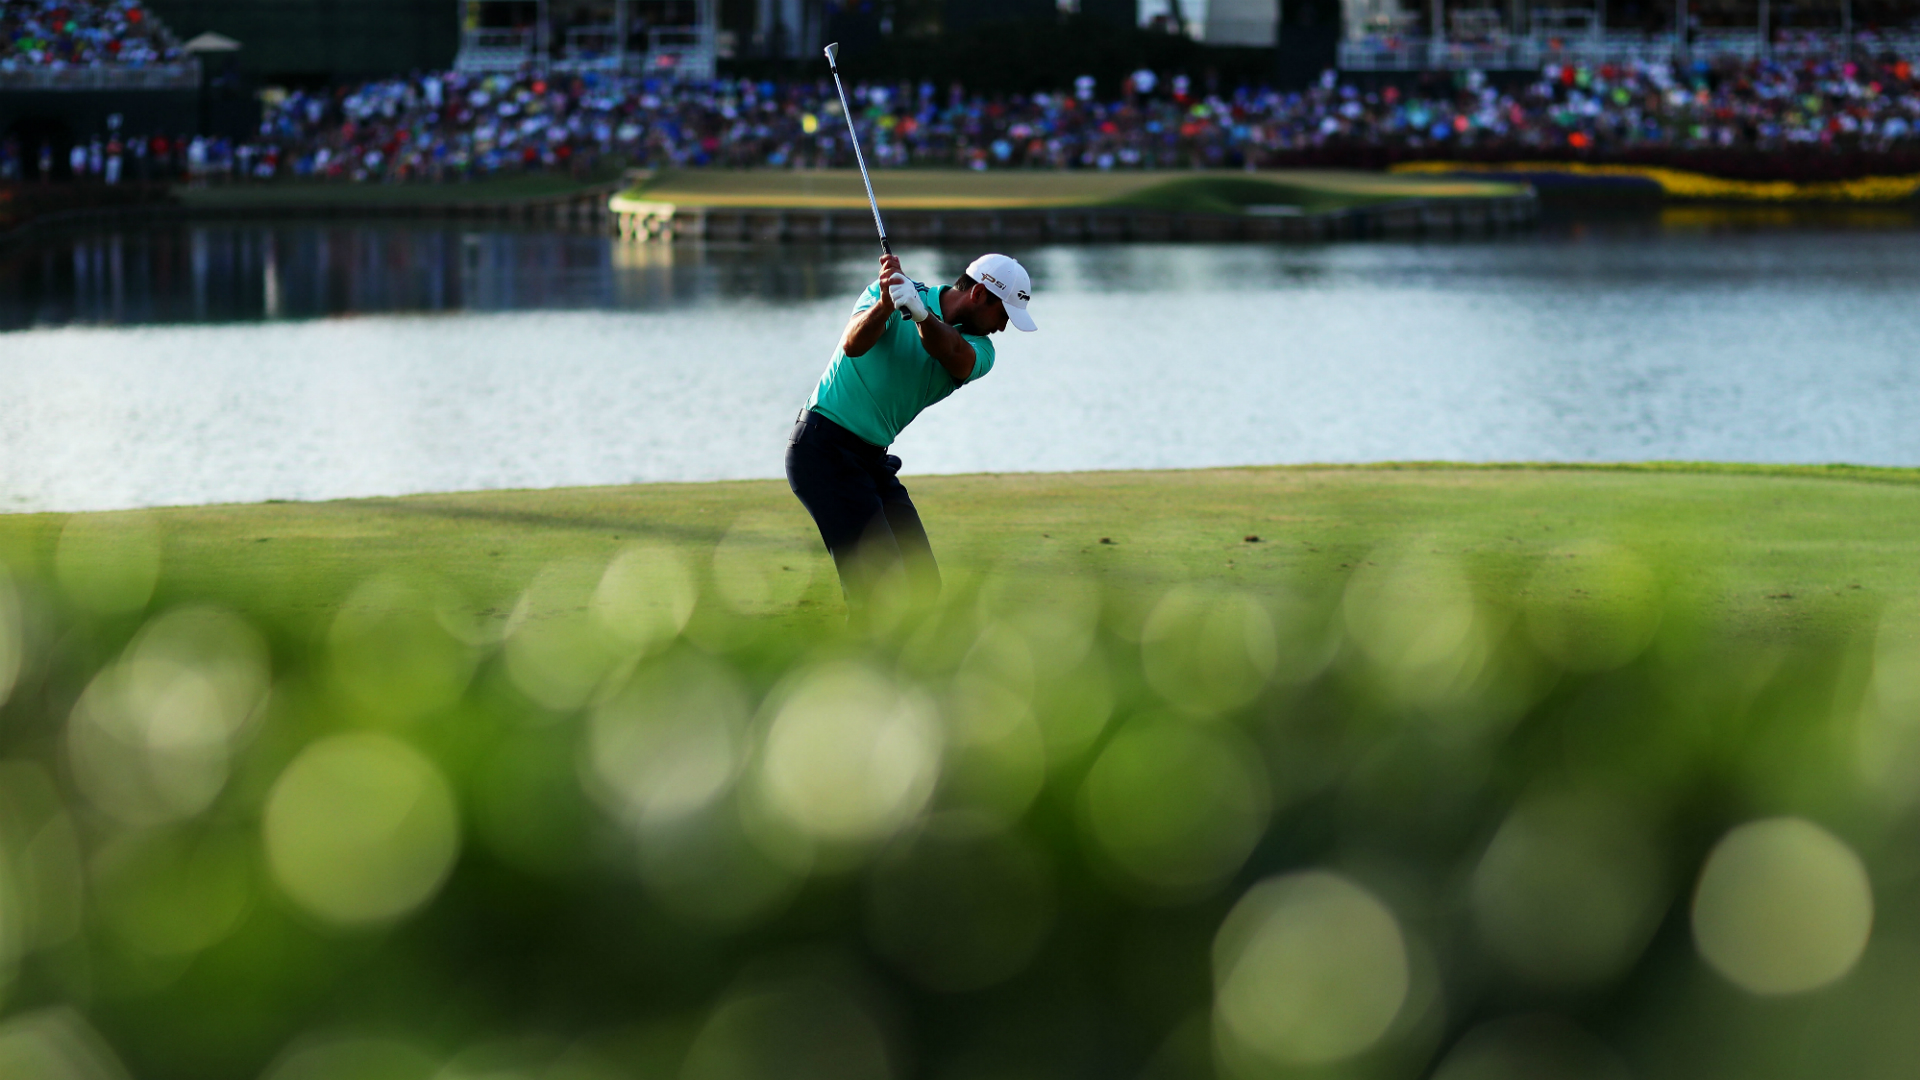 Golf | Day frustrated by speed of greens at TPC Sawgrass | SPORTAL